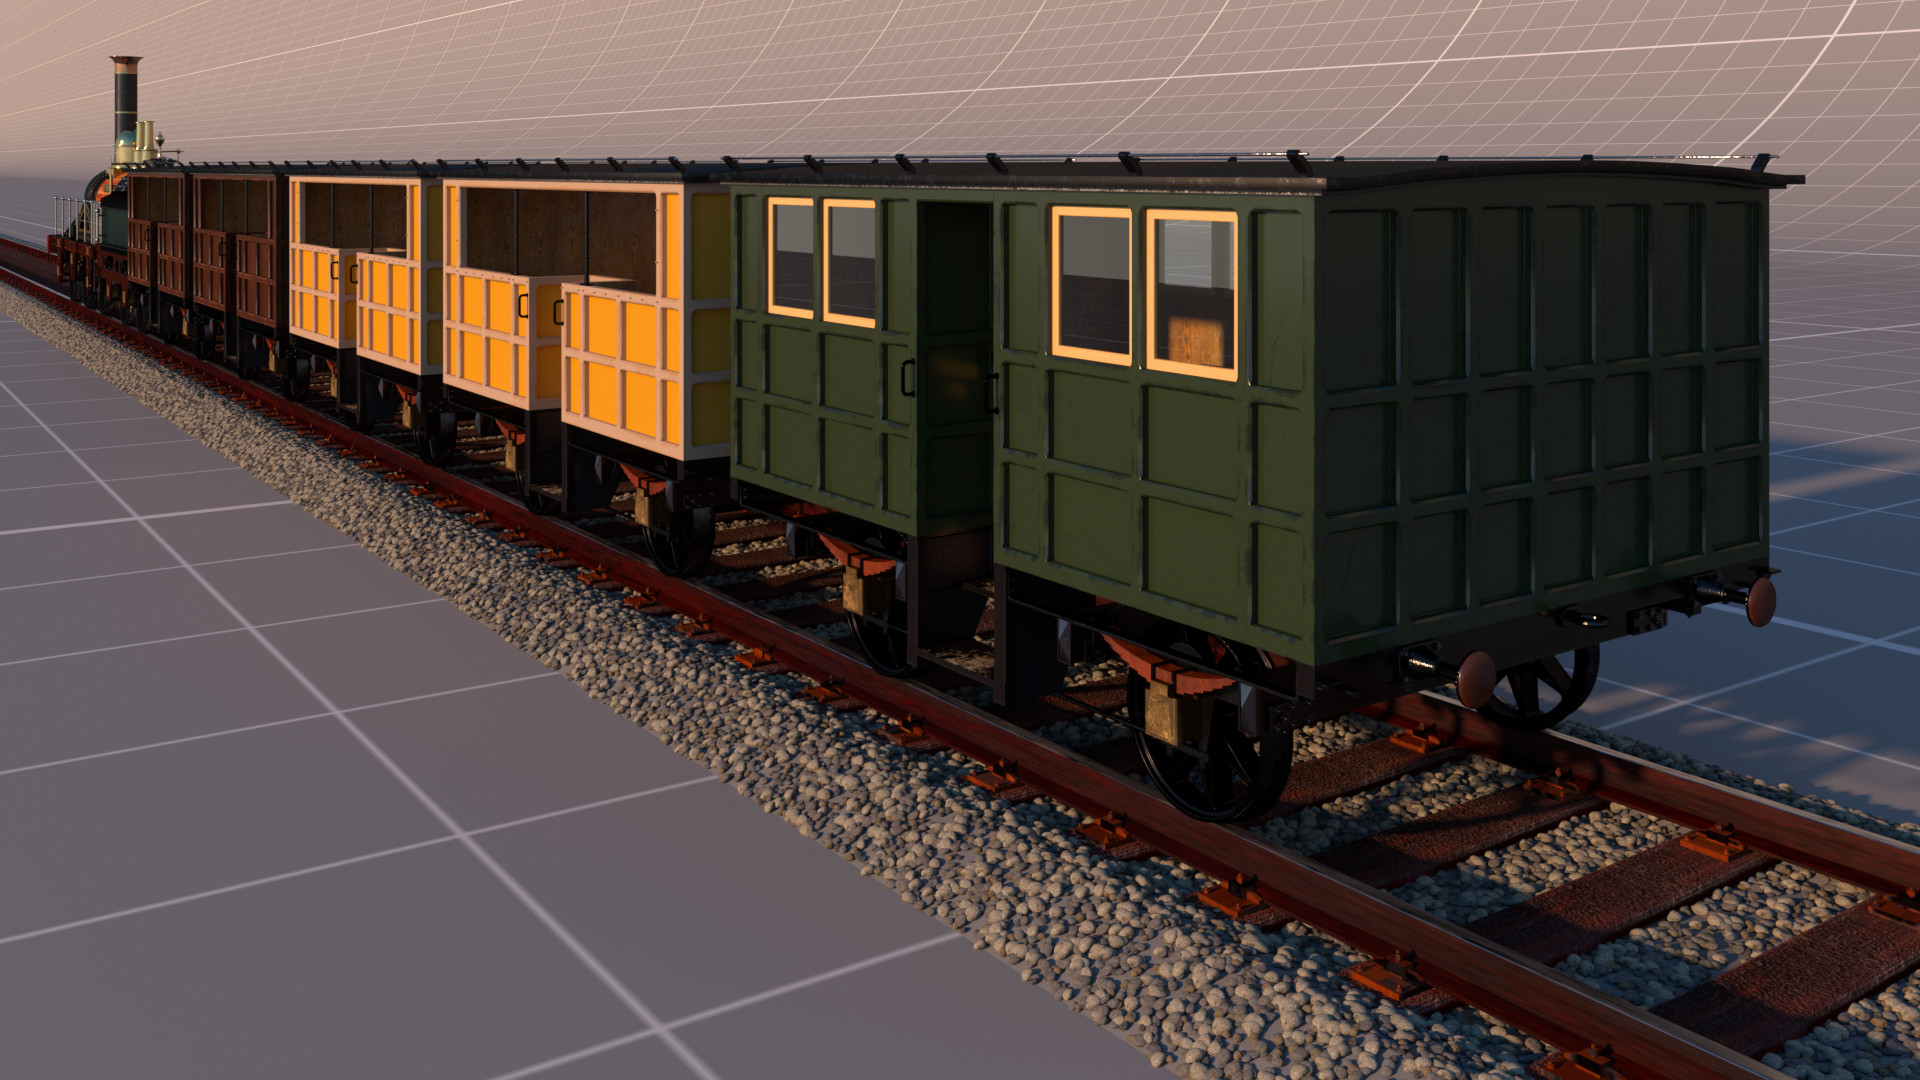 Full render of the train, backside.